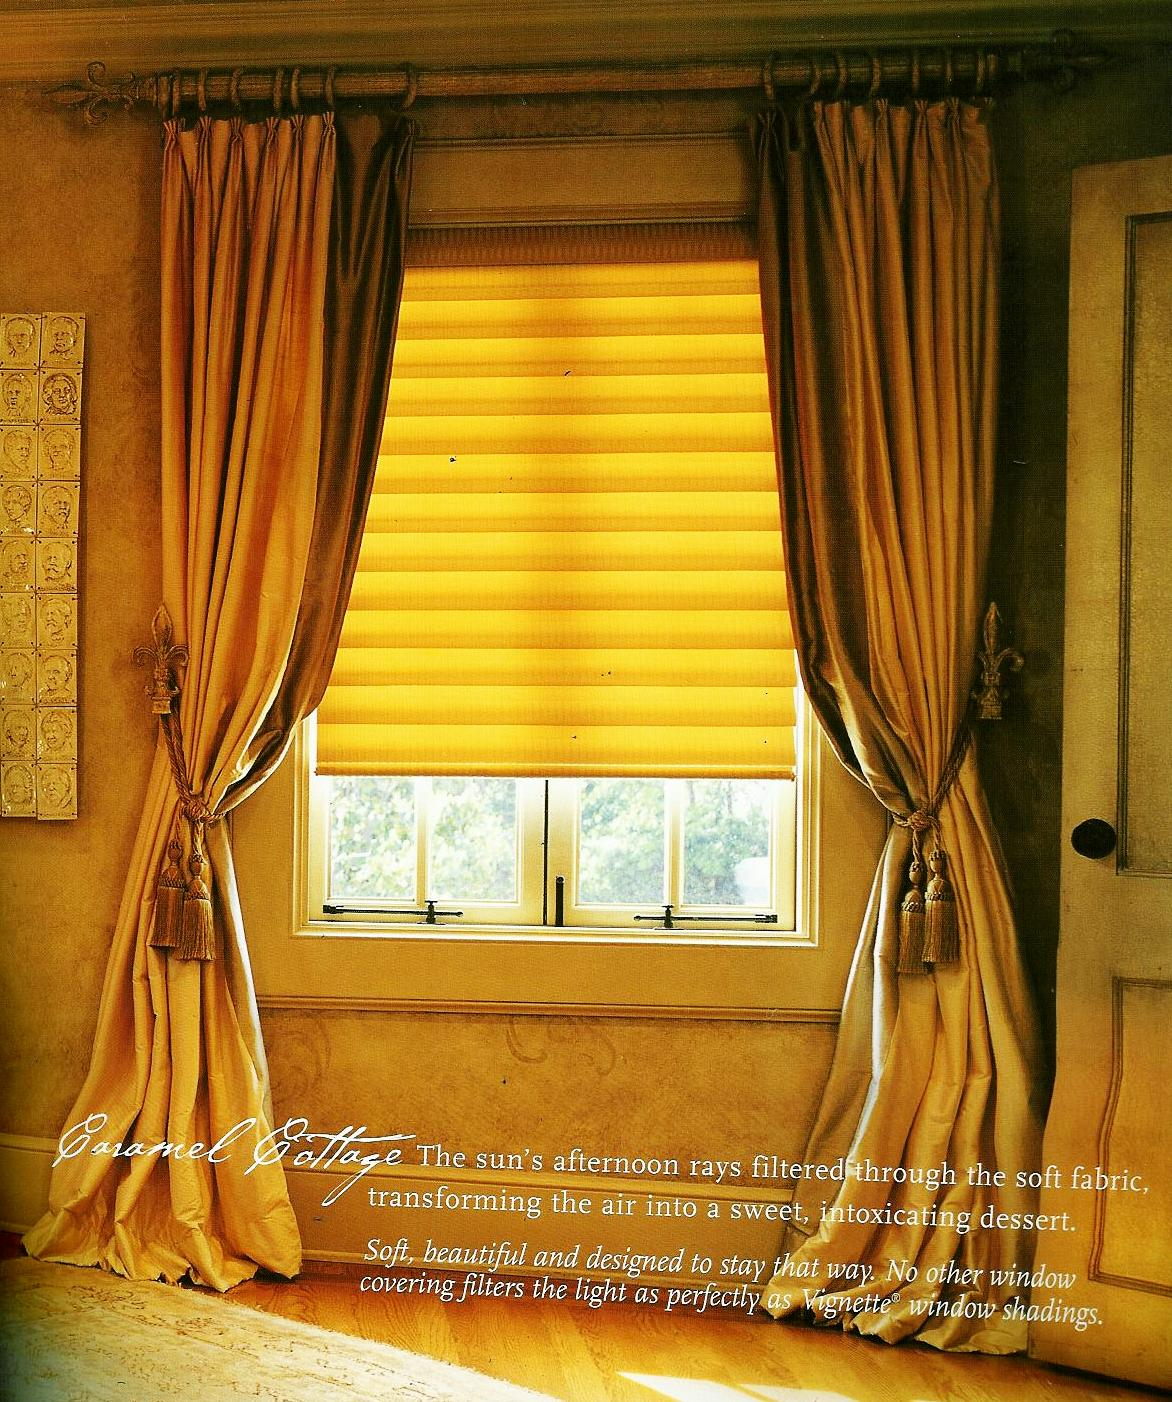 Additional Types Of Window Coverings That Can Provide